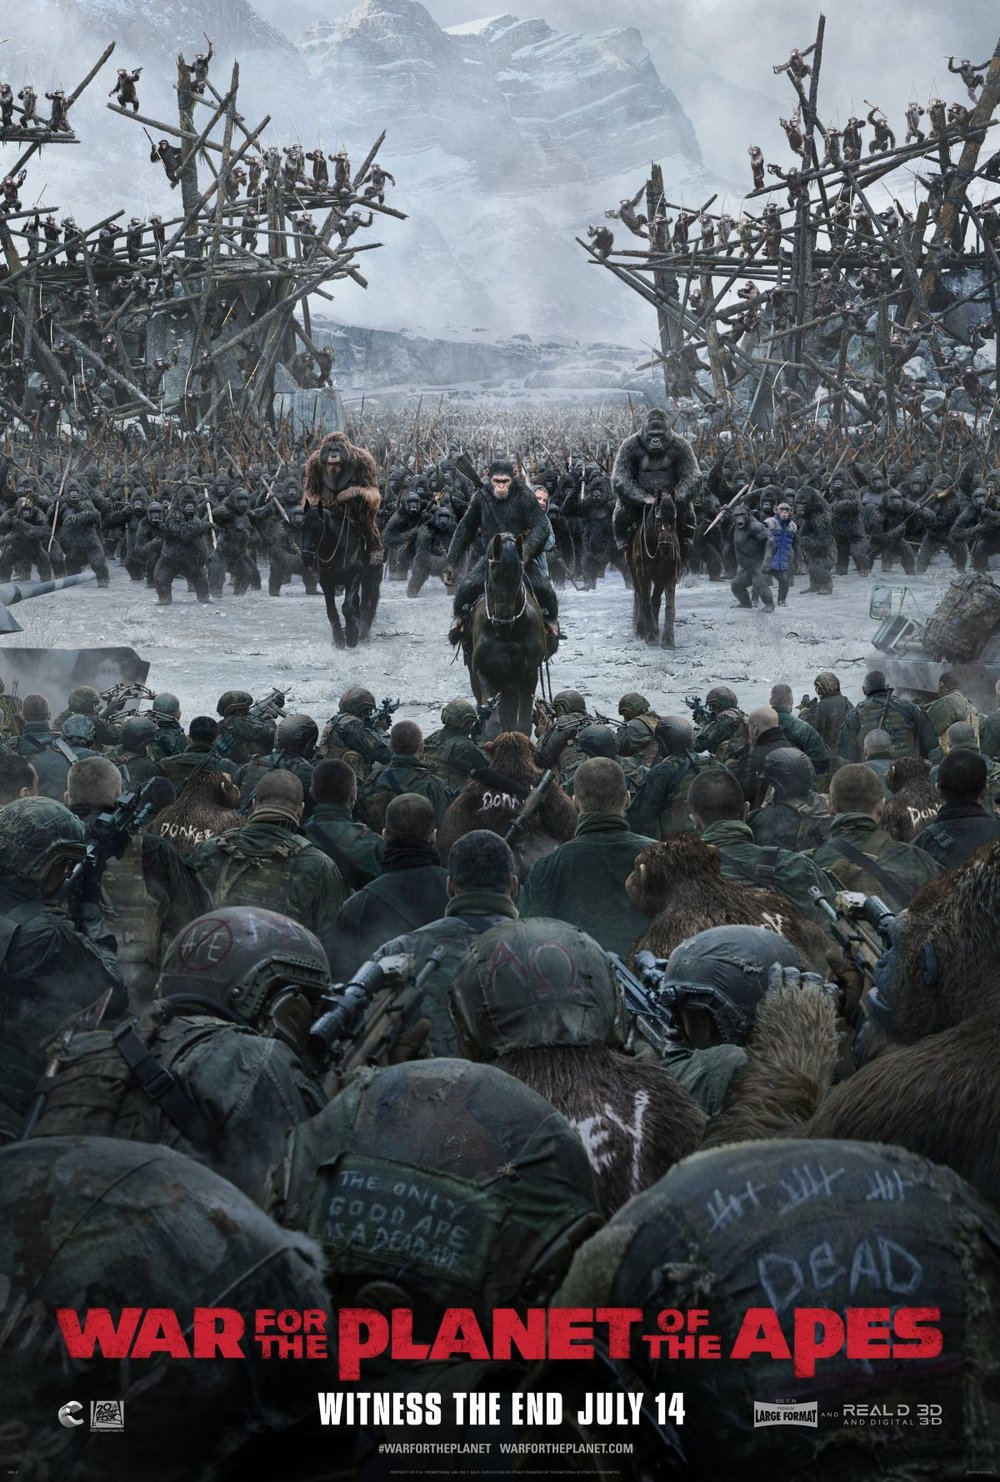 final-trailer-for-war-for-the-planet-of-the-apes-no-mercy-no-peace-this-is-war3